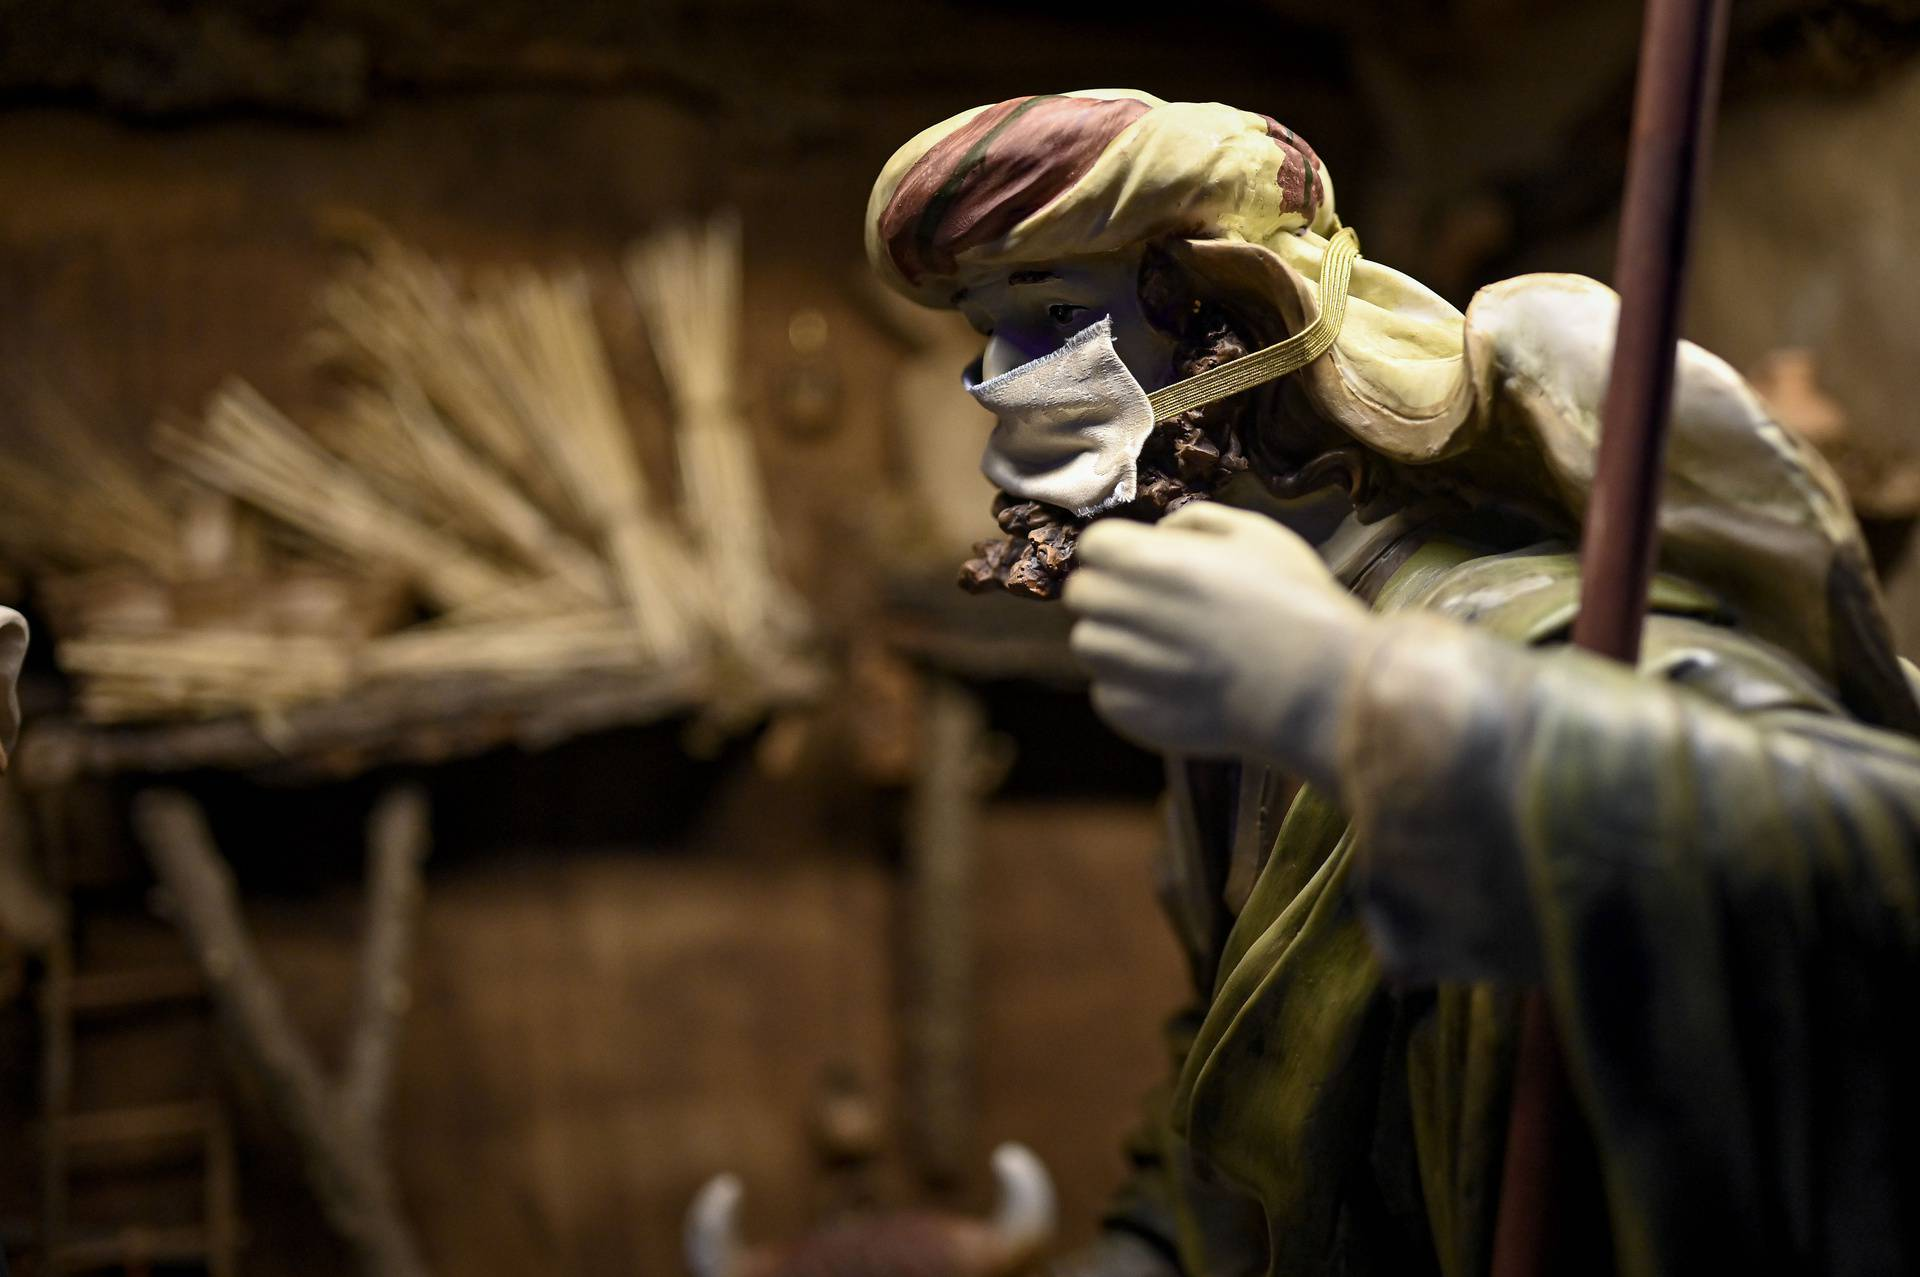 Turin. The crib in the cathedral with the characters with the mask for the Covid19 emergency